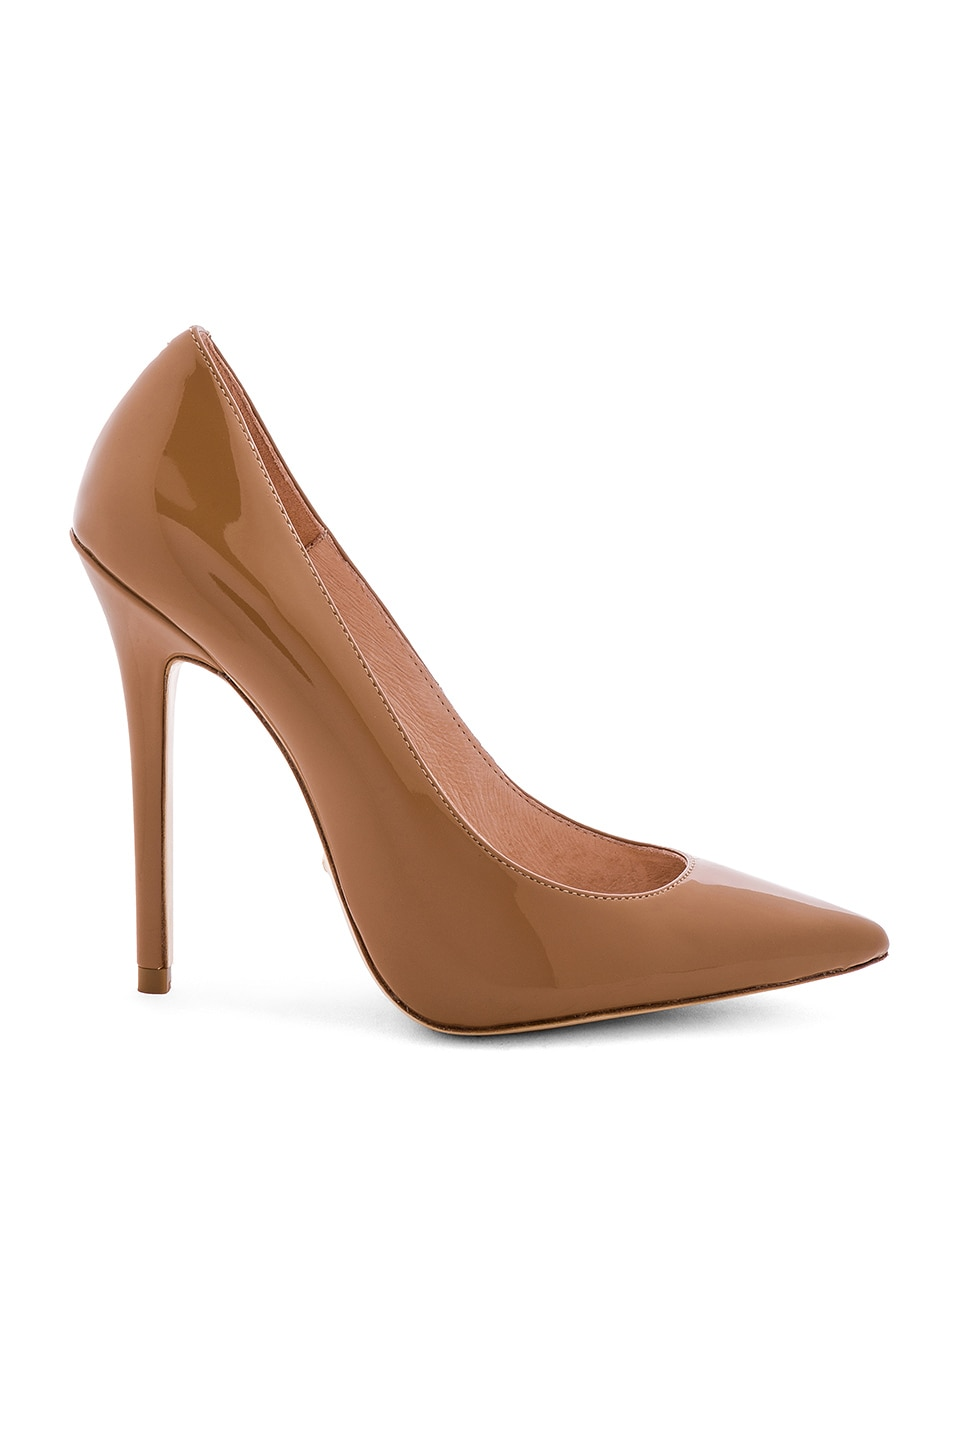 RAYE Madonna Heel in Dark Tan